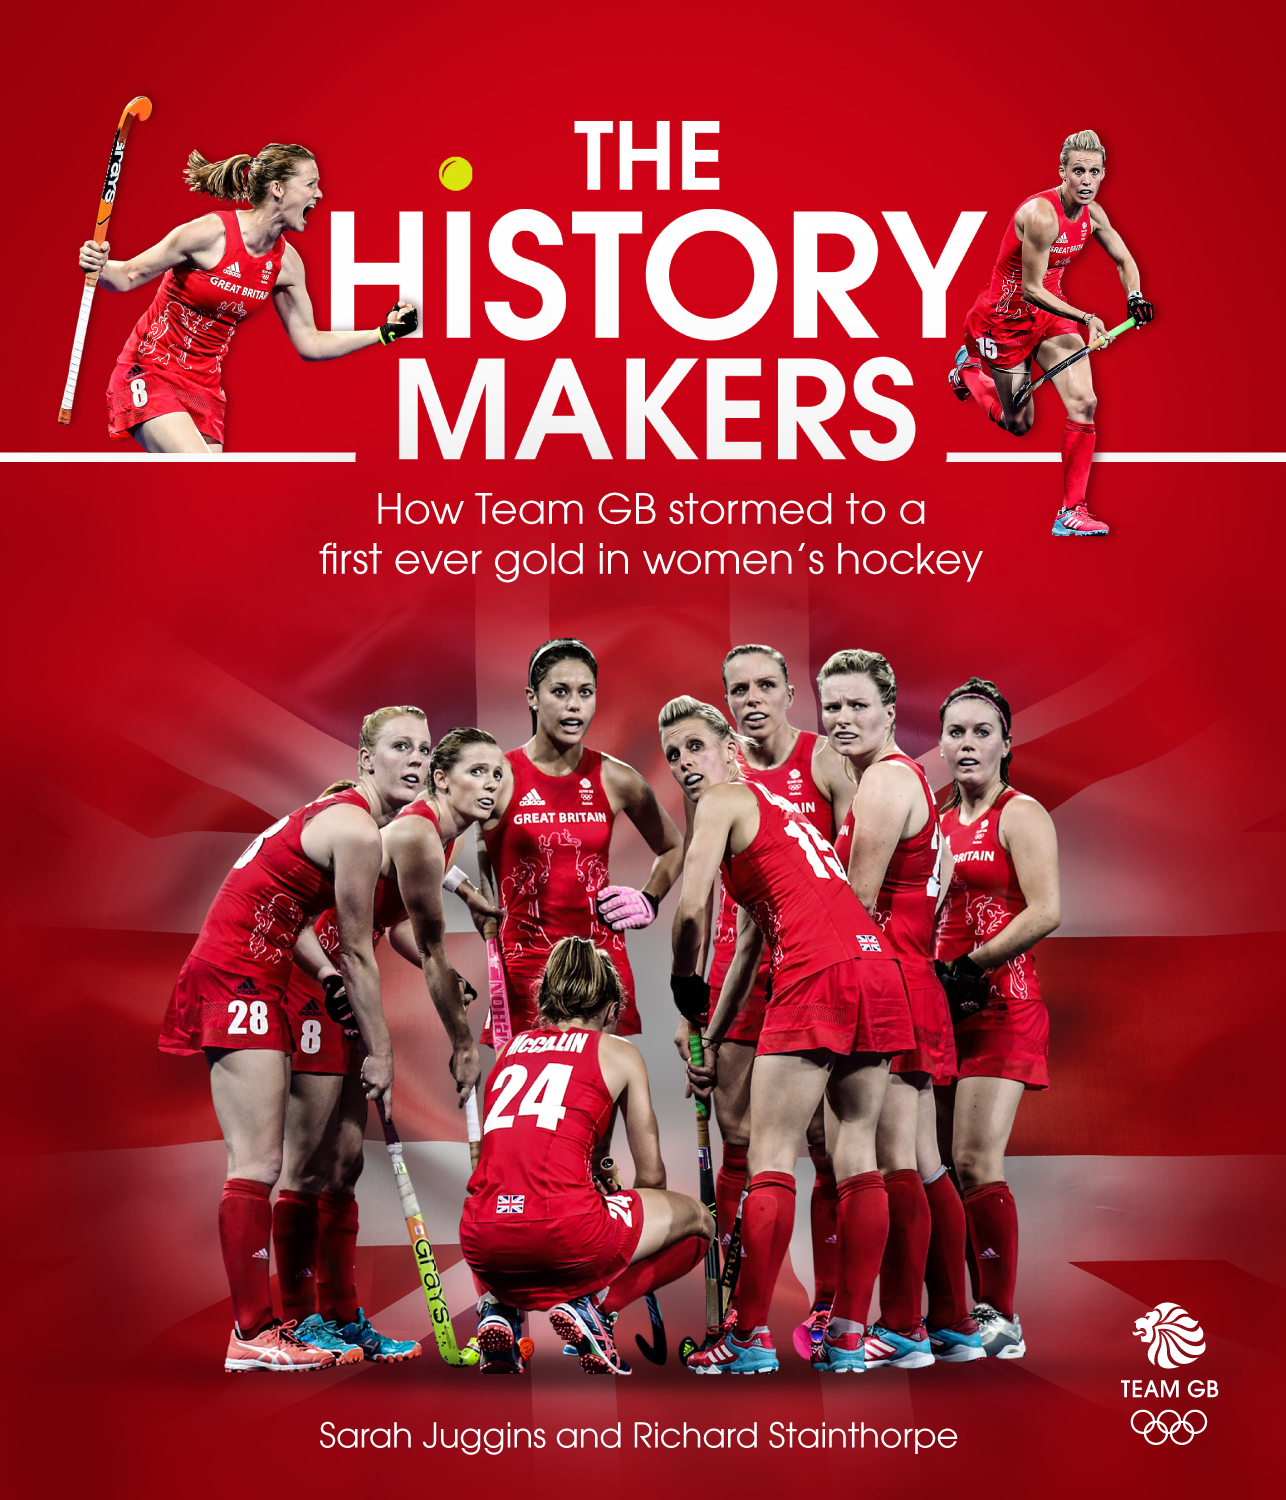 The History Makers